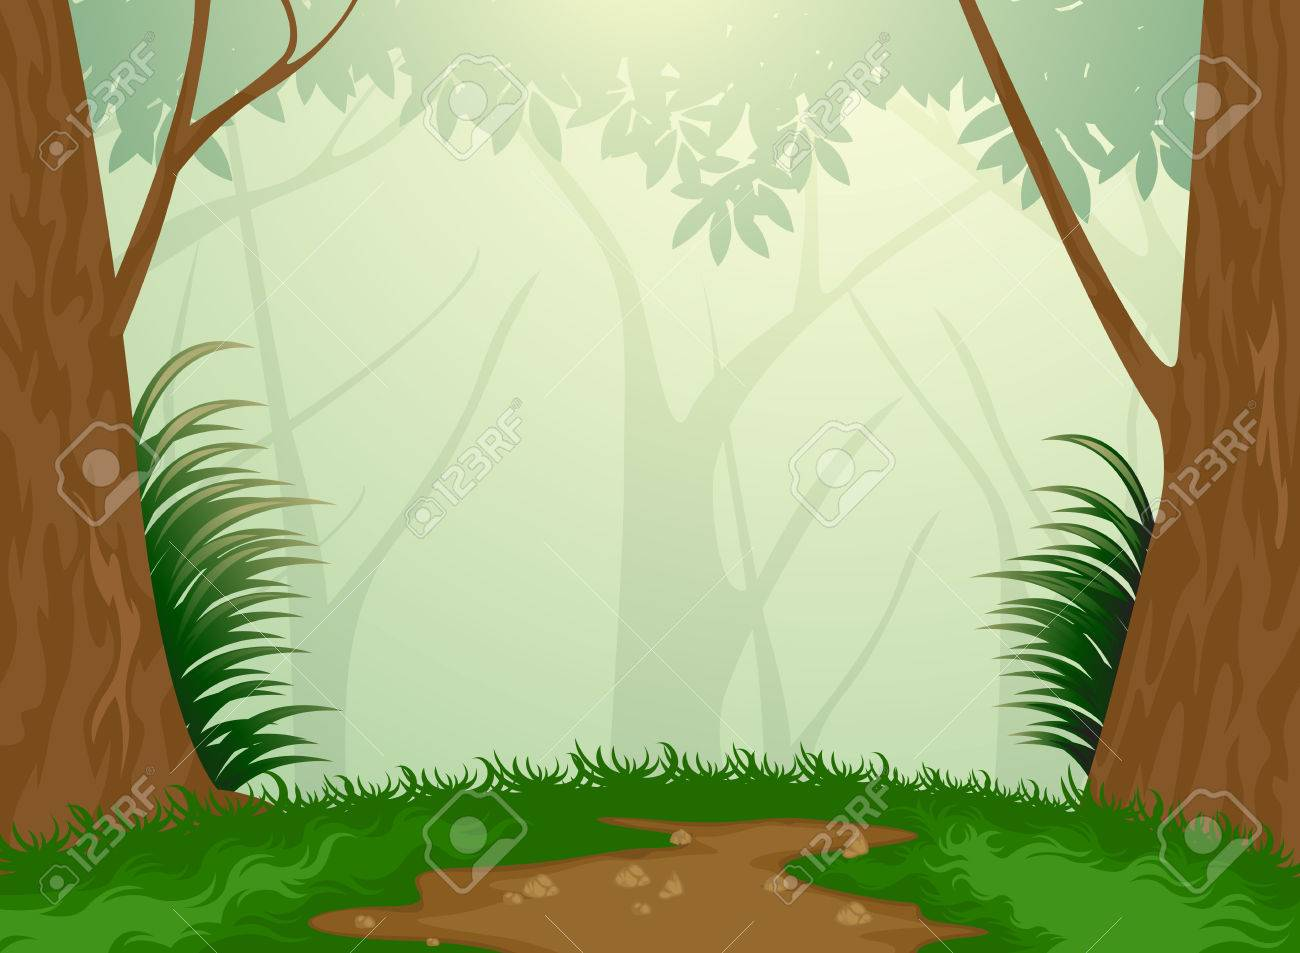 Beautiful Tropical Evergreen Forest Nature Background Royalty Free Cliparts Vectors And Stock Illustration Image 26584265 The conditions of this biome. beautiful tropical evergreen forest nature background